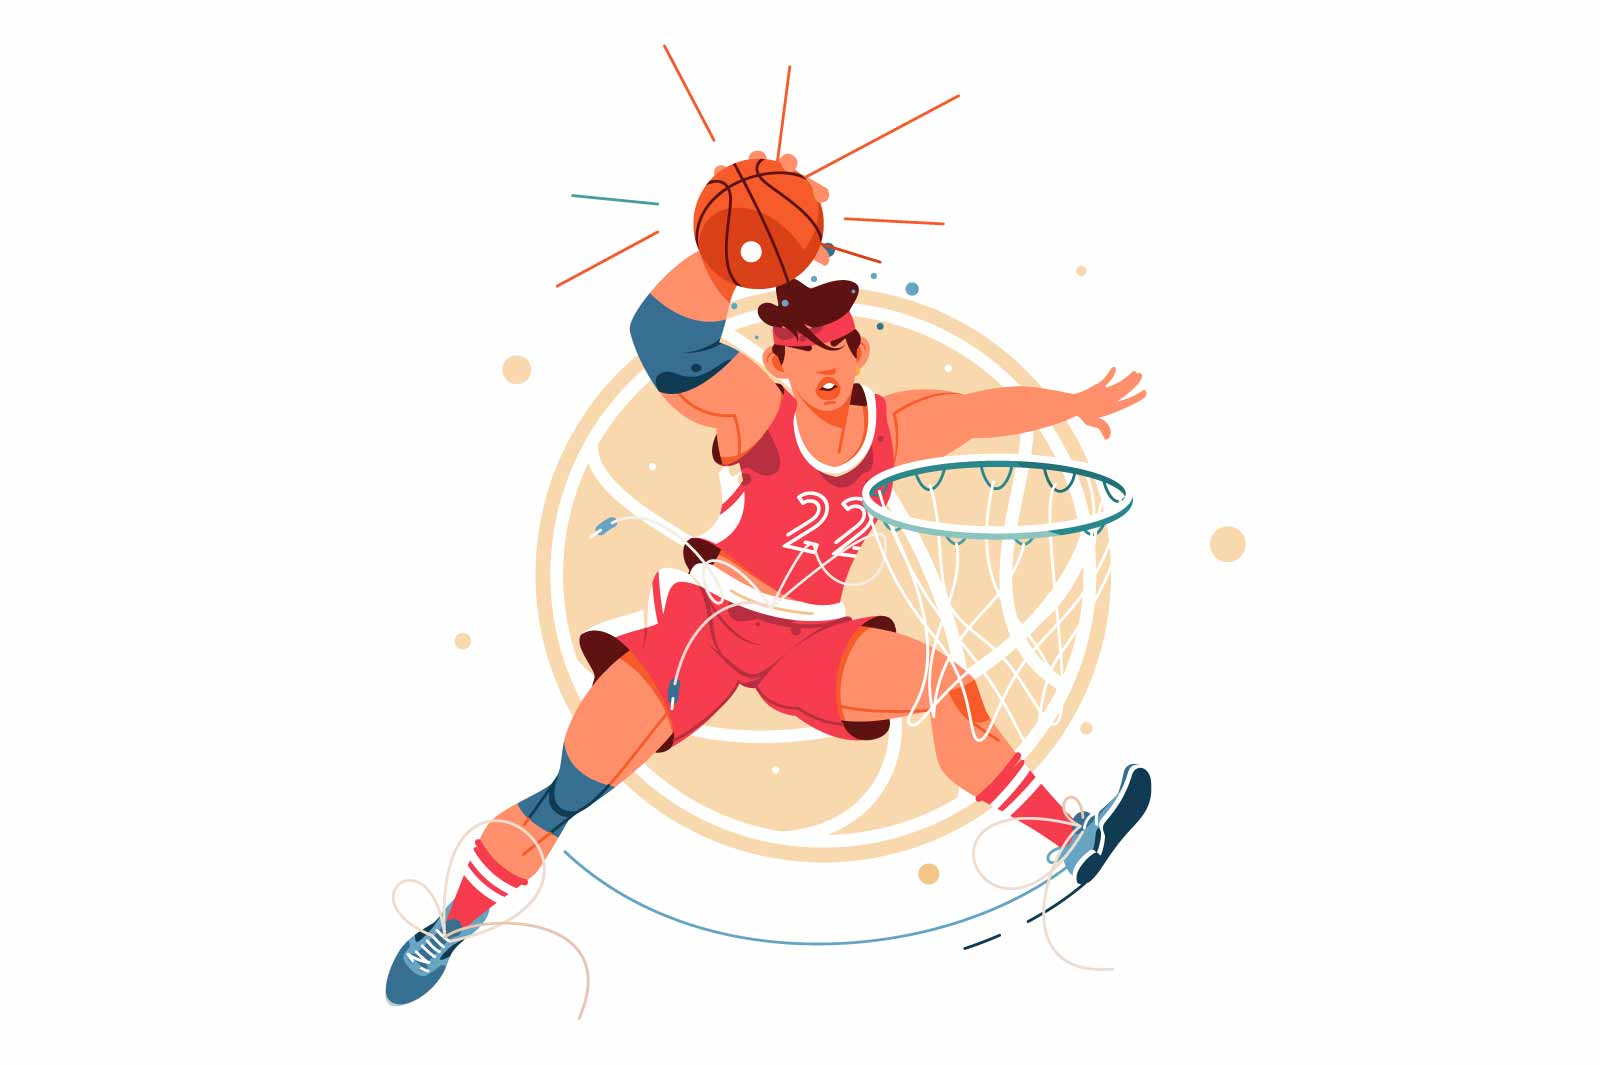 Excited young male basketball player scores goal in jump with ball. Isolated icon concept of man in sport playing in game performs achievement in competition. Vector illustration.